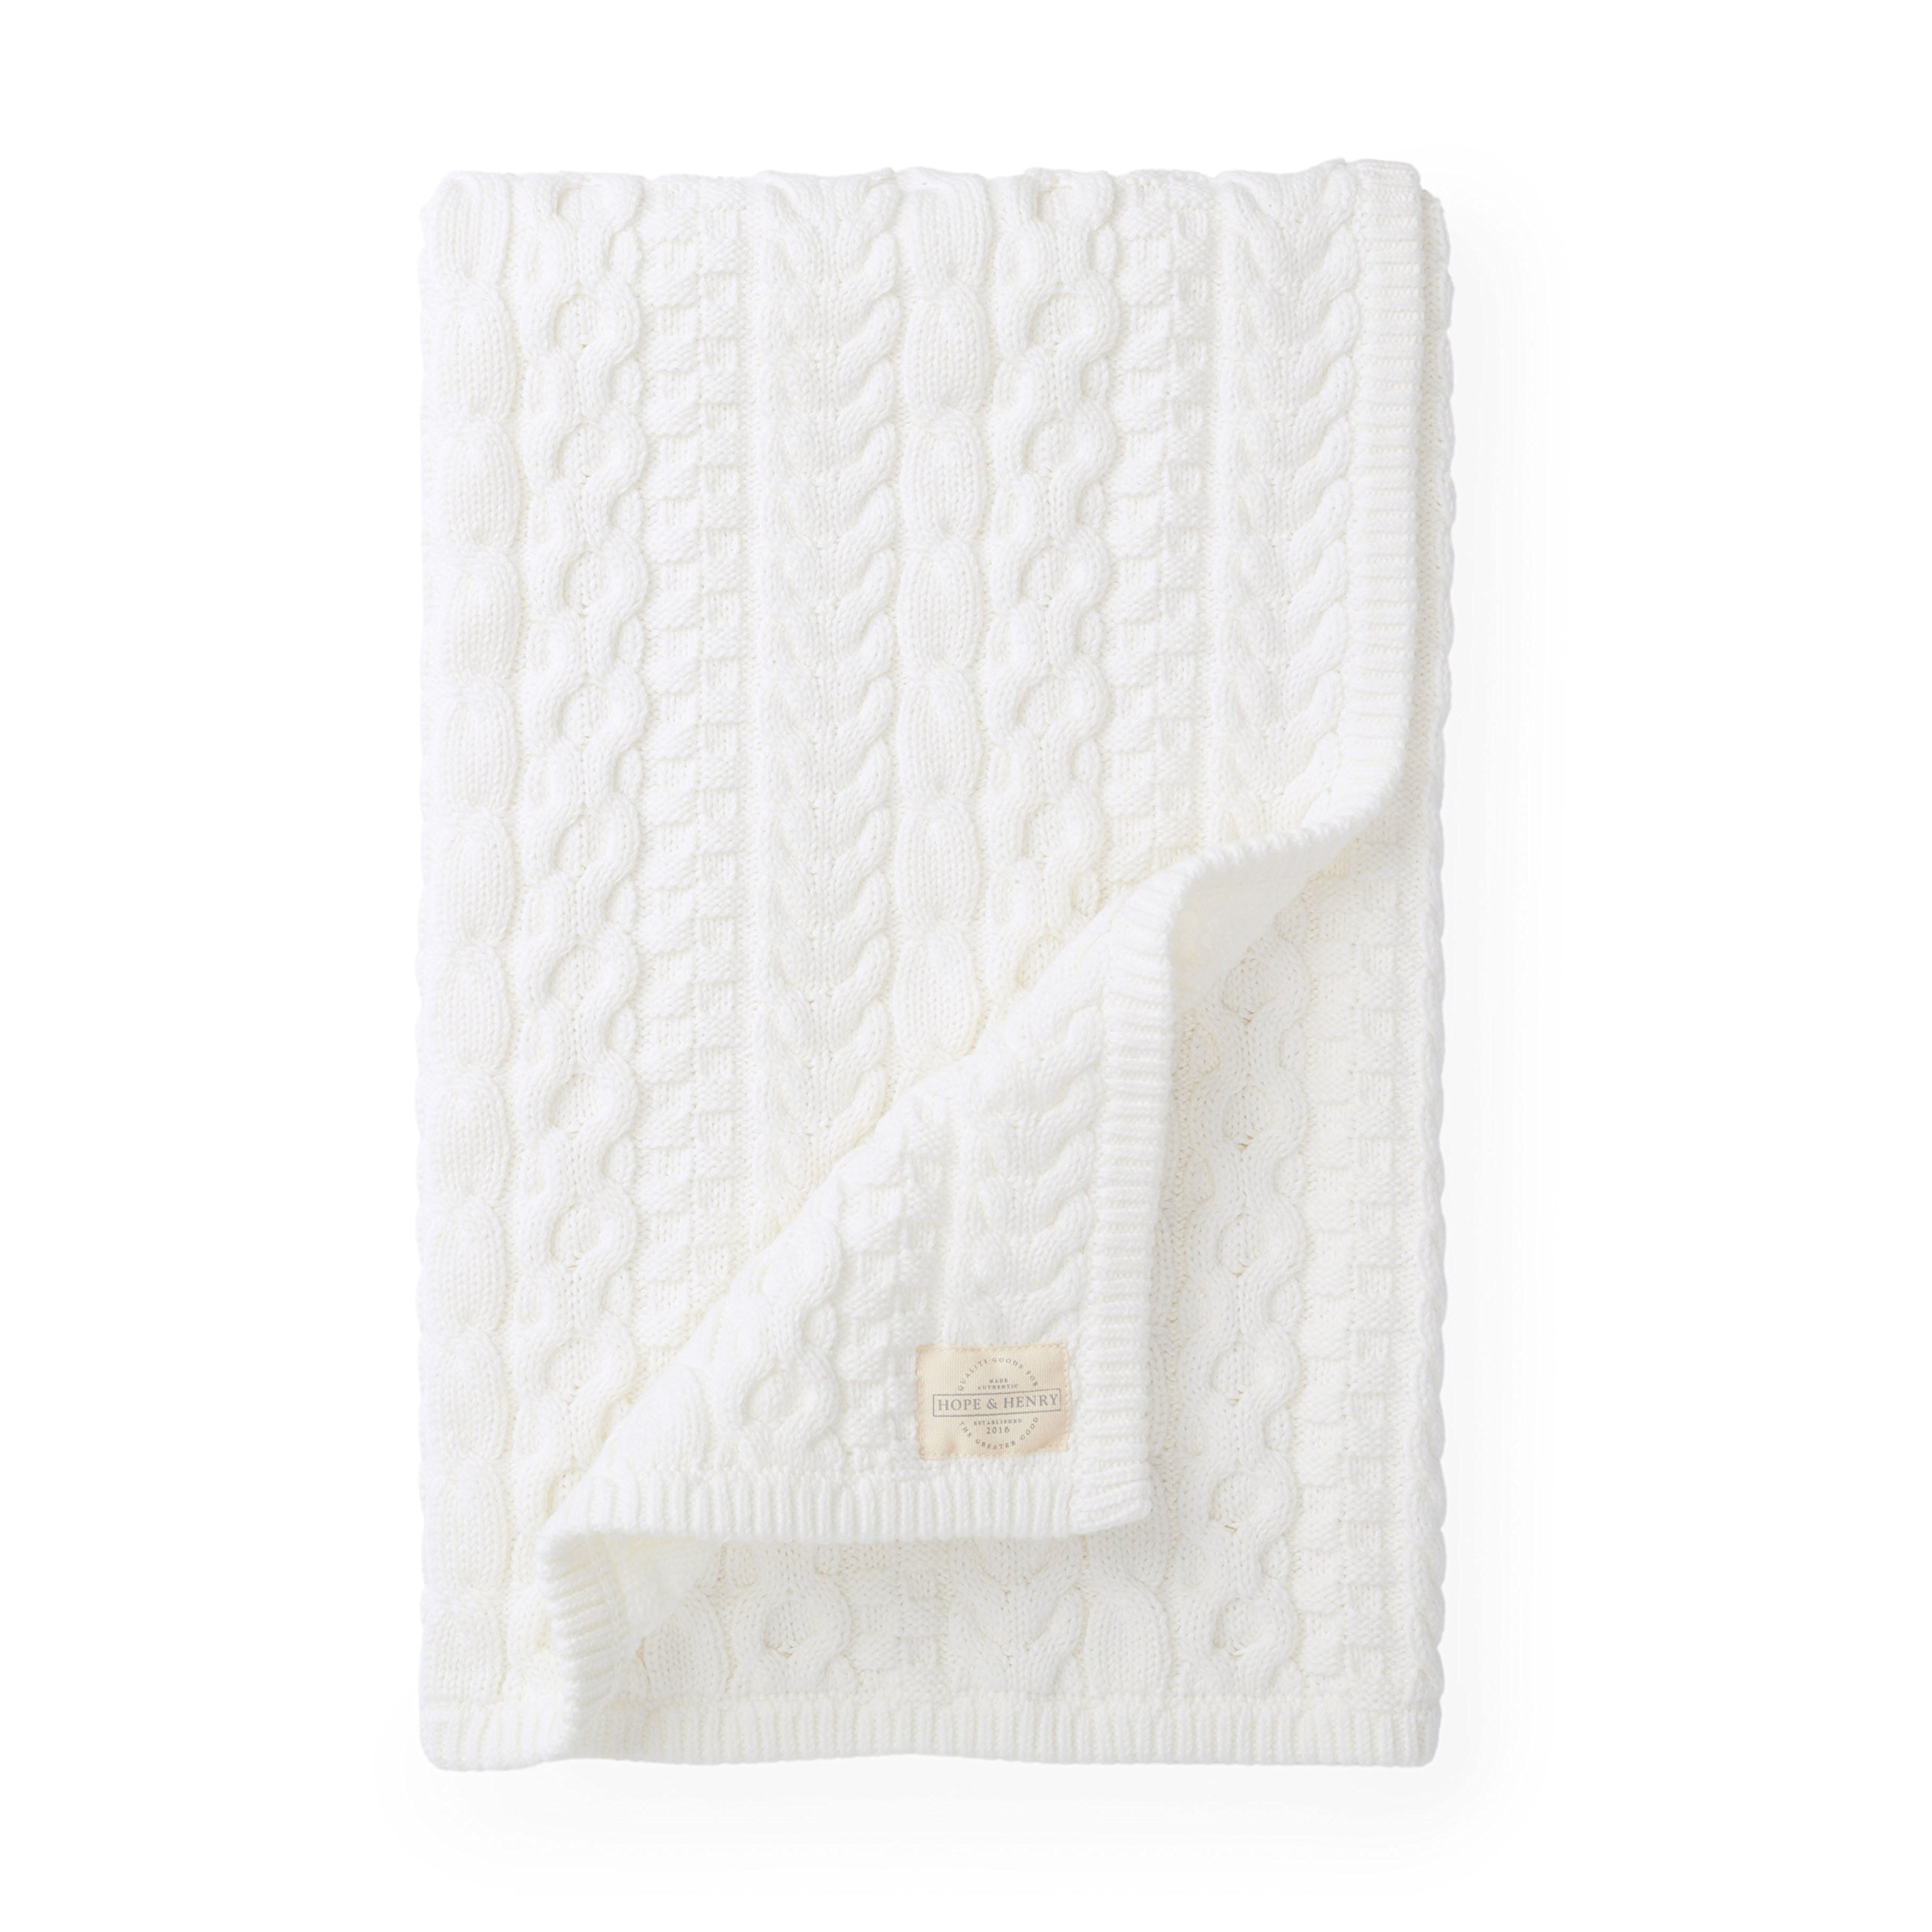 Hope & Henry Layette Ivory Cable Blanket by Hope & Henry